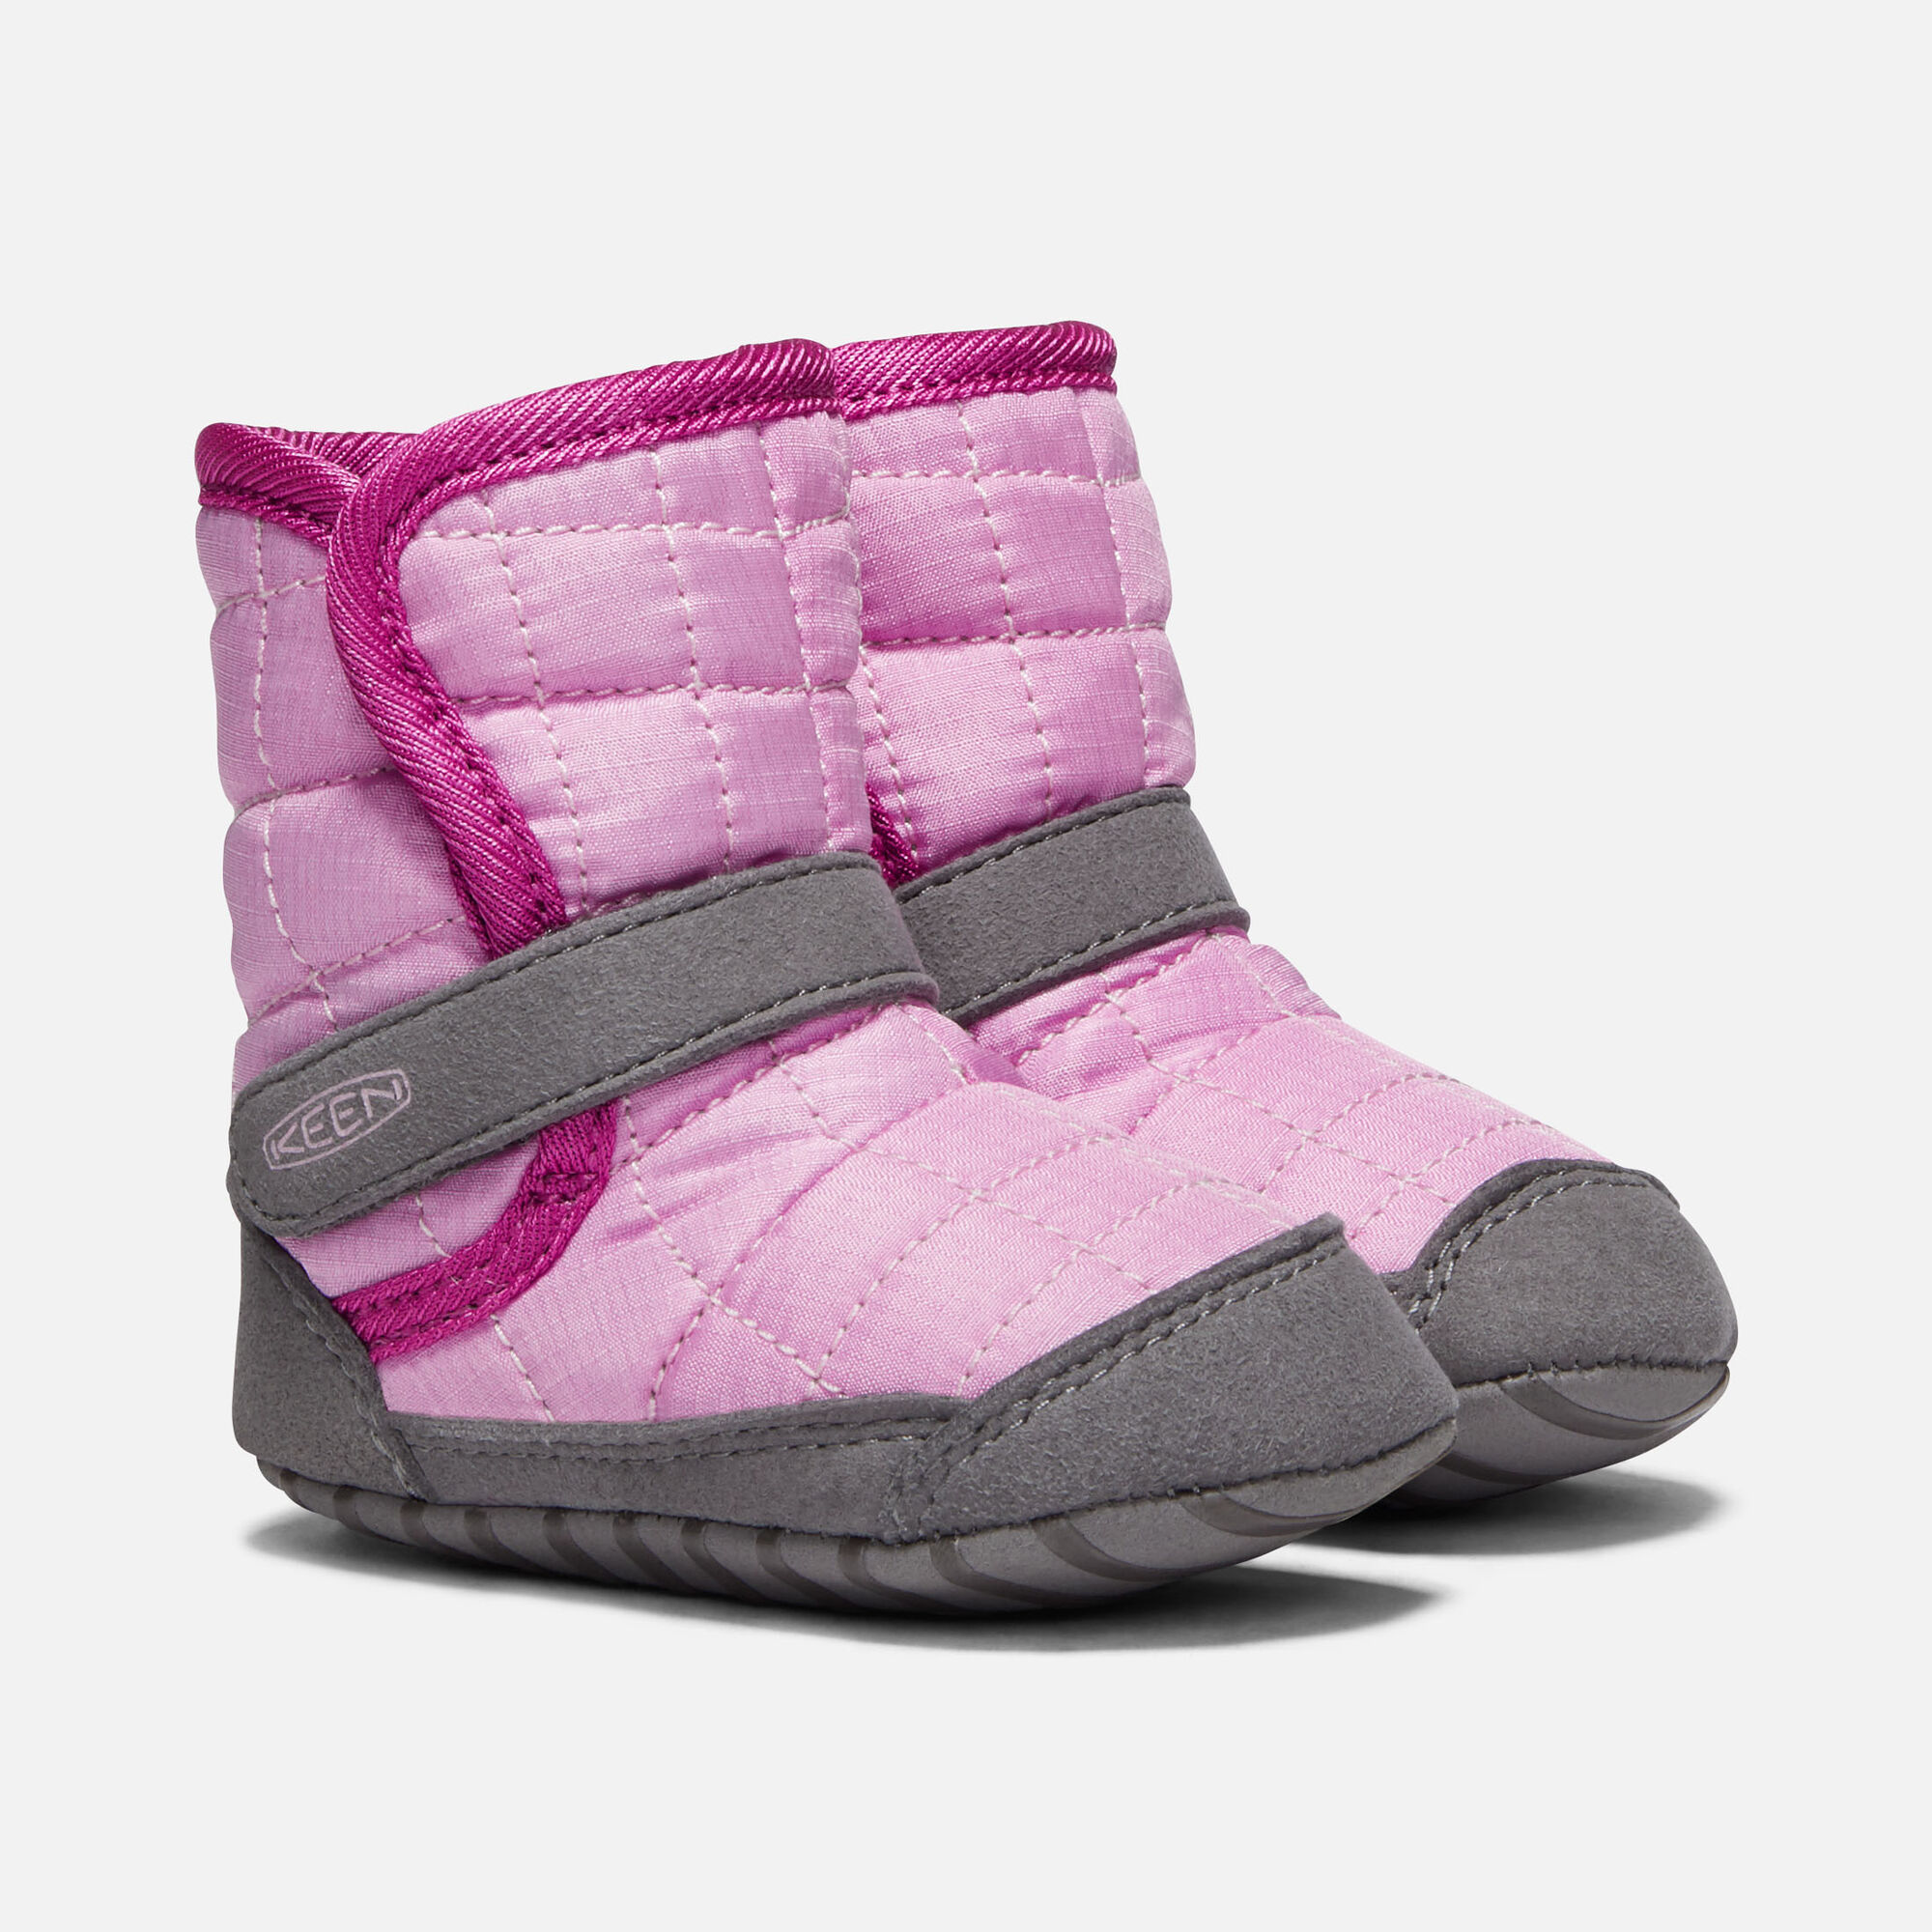 BABY ROVER CRIB WINTER SHOES